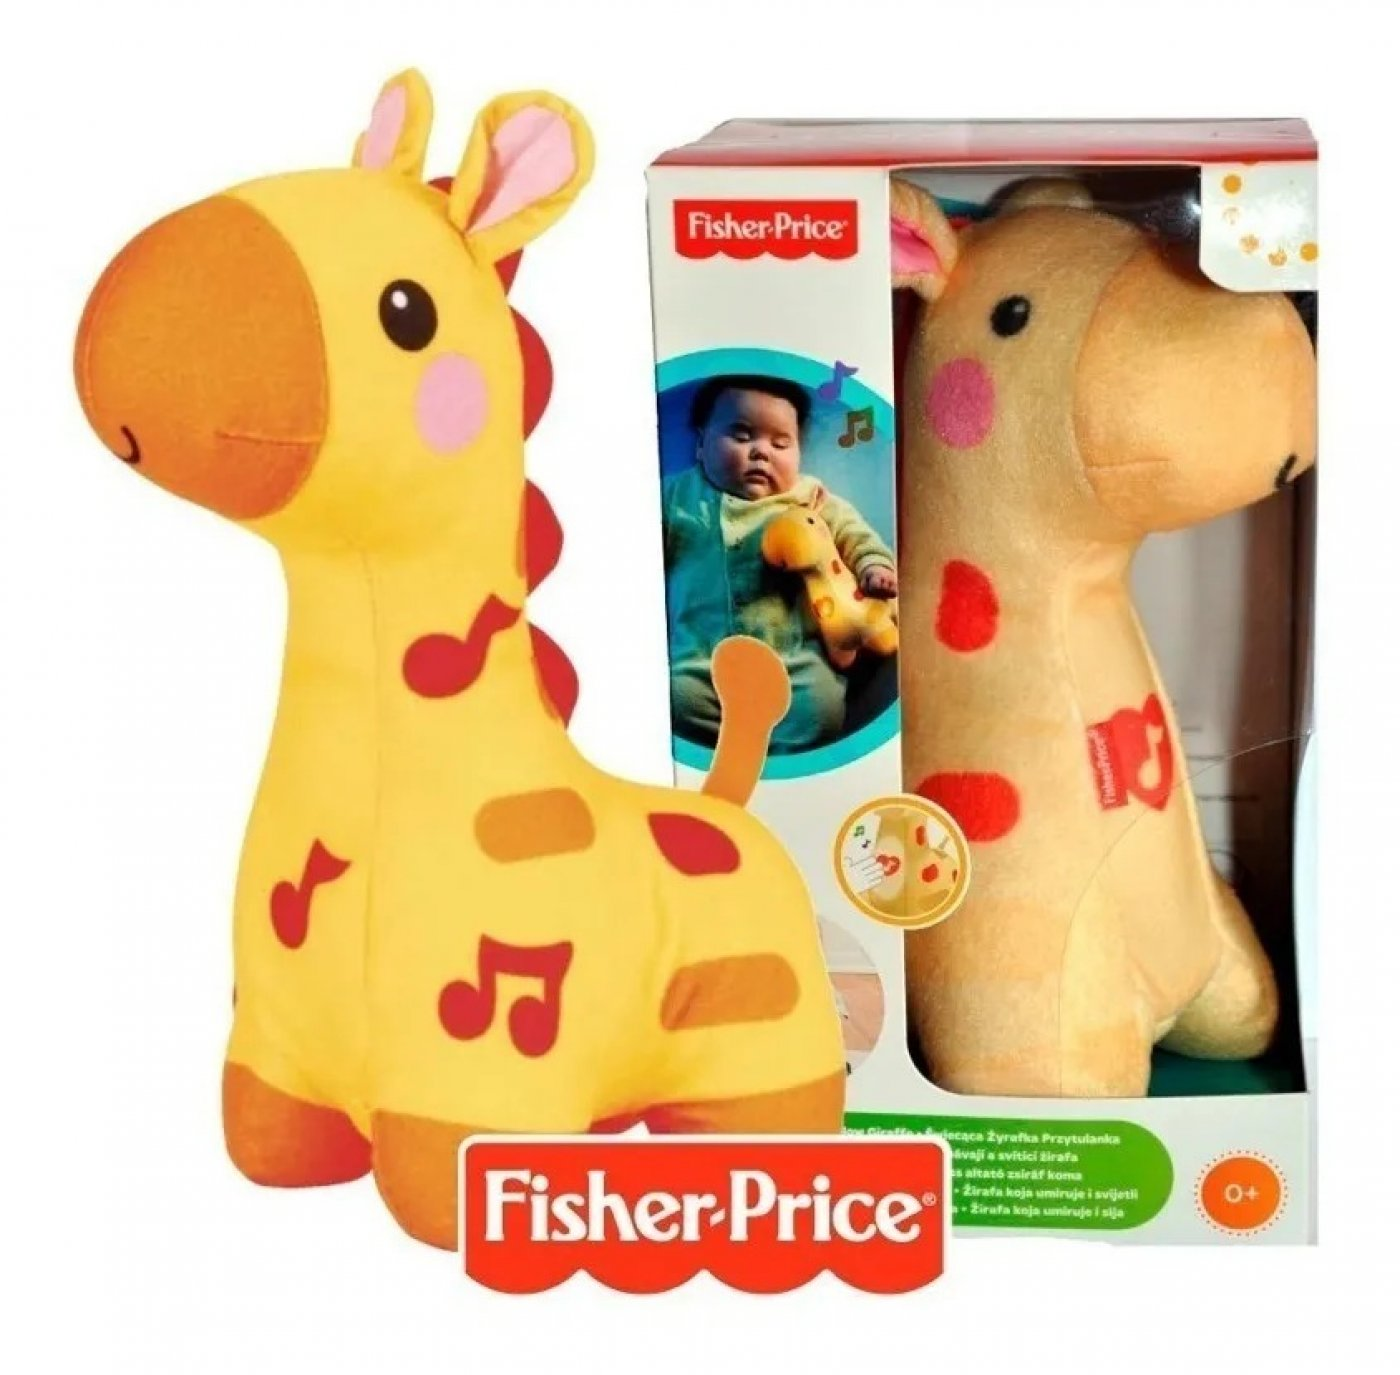 Fisher-price Jirafa Brillos Luminosos Juguete Para Bebés